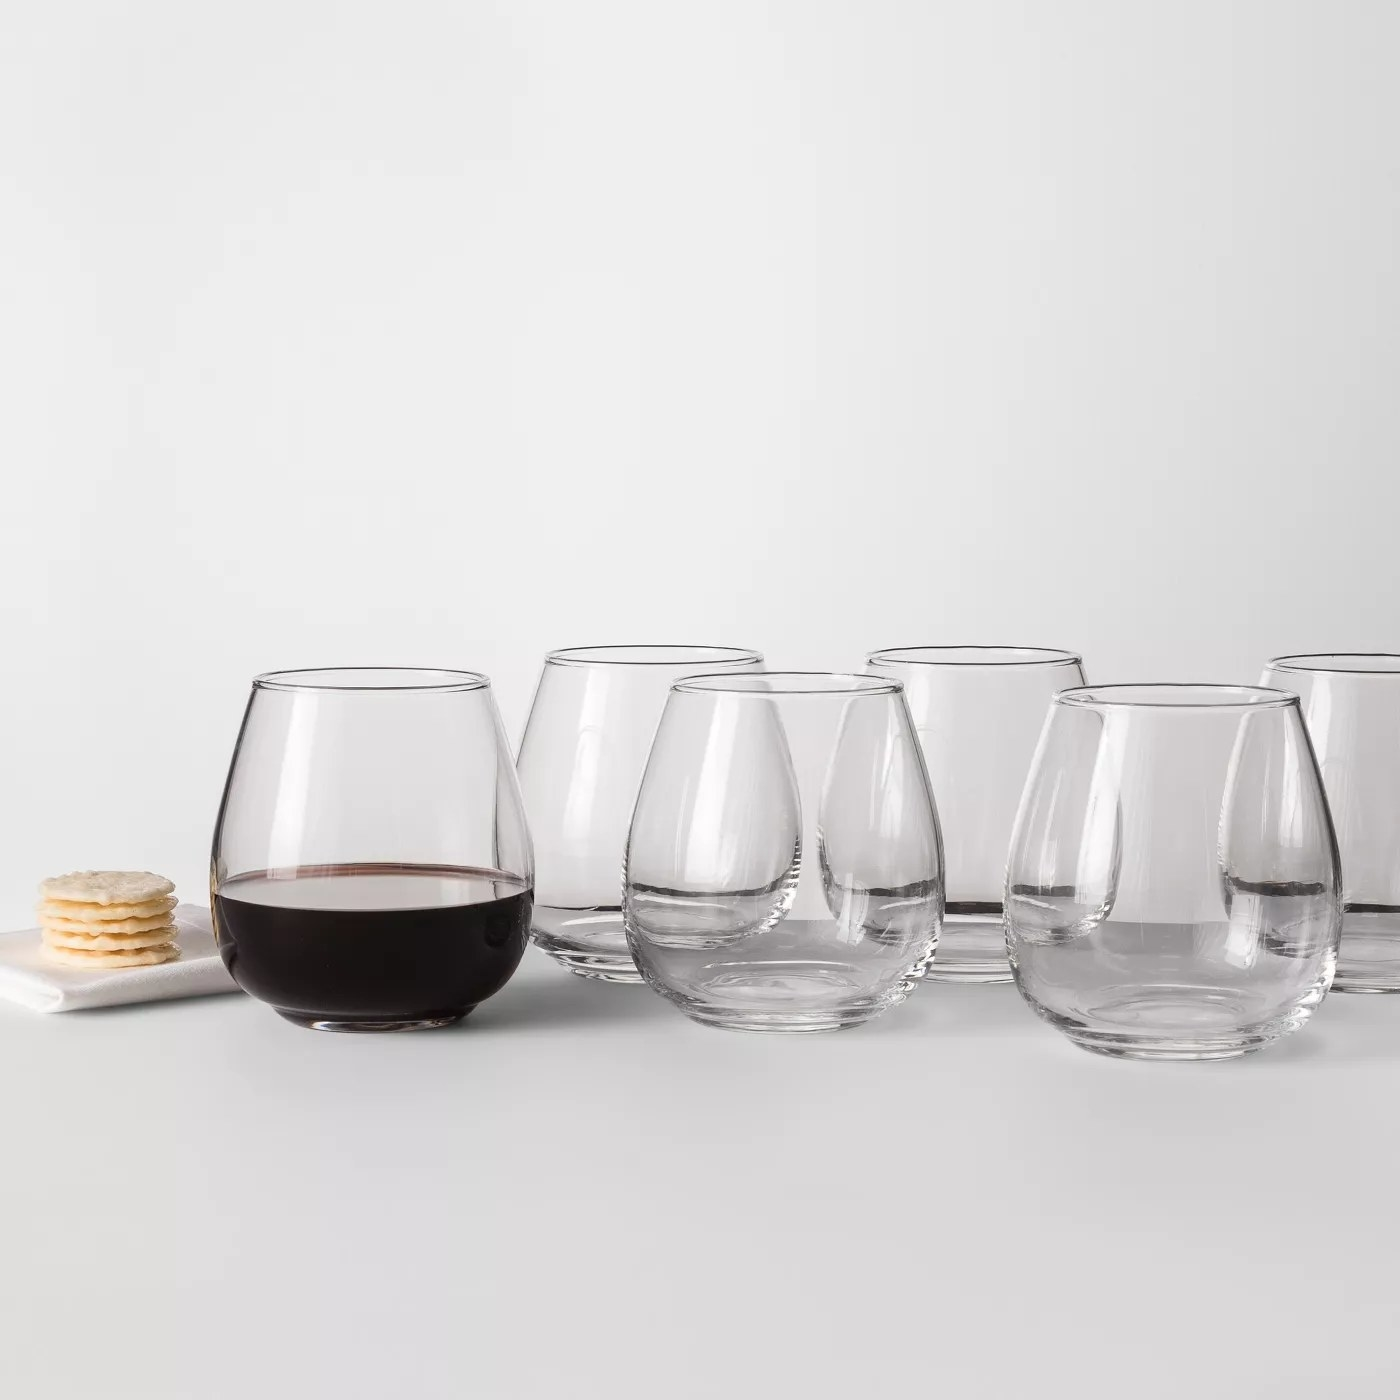 The stemless wine glass set, including one filled with red wine, on a table